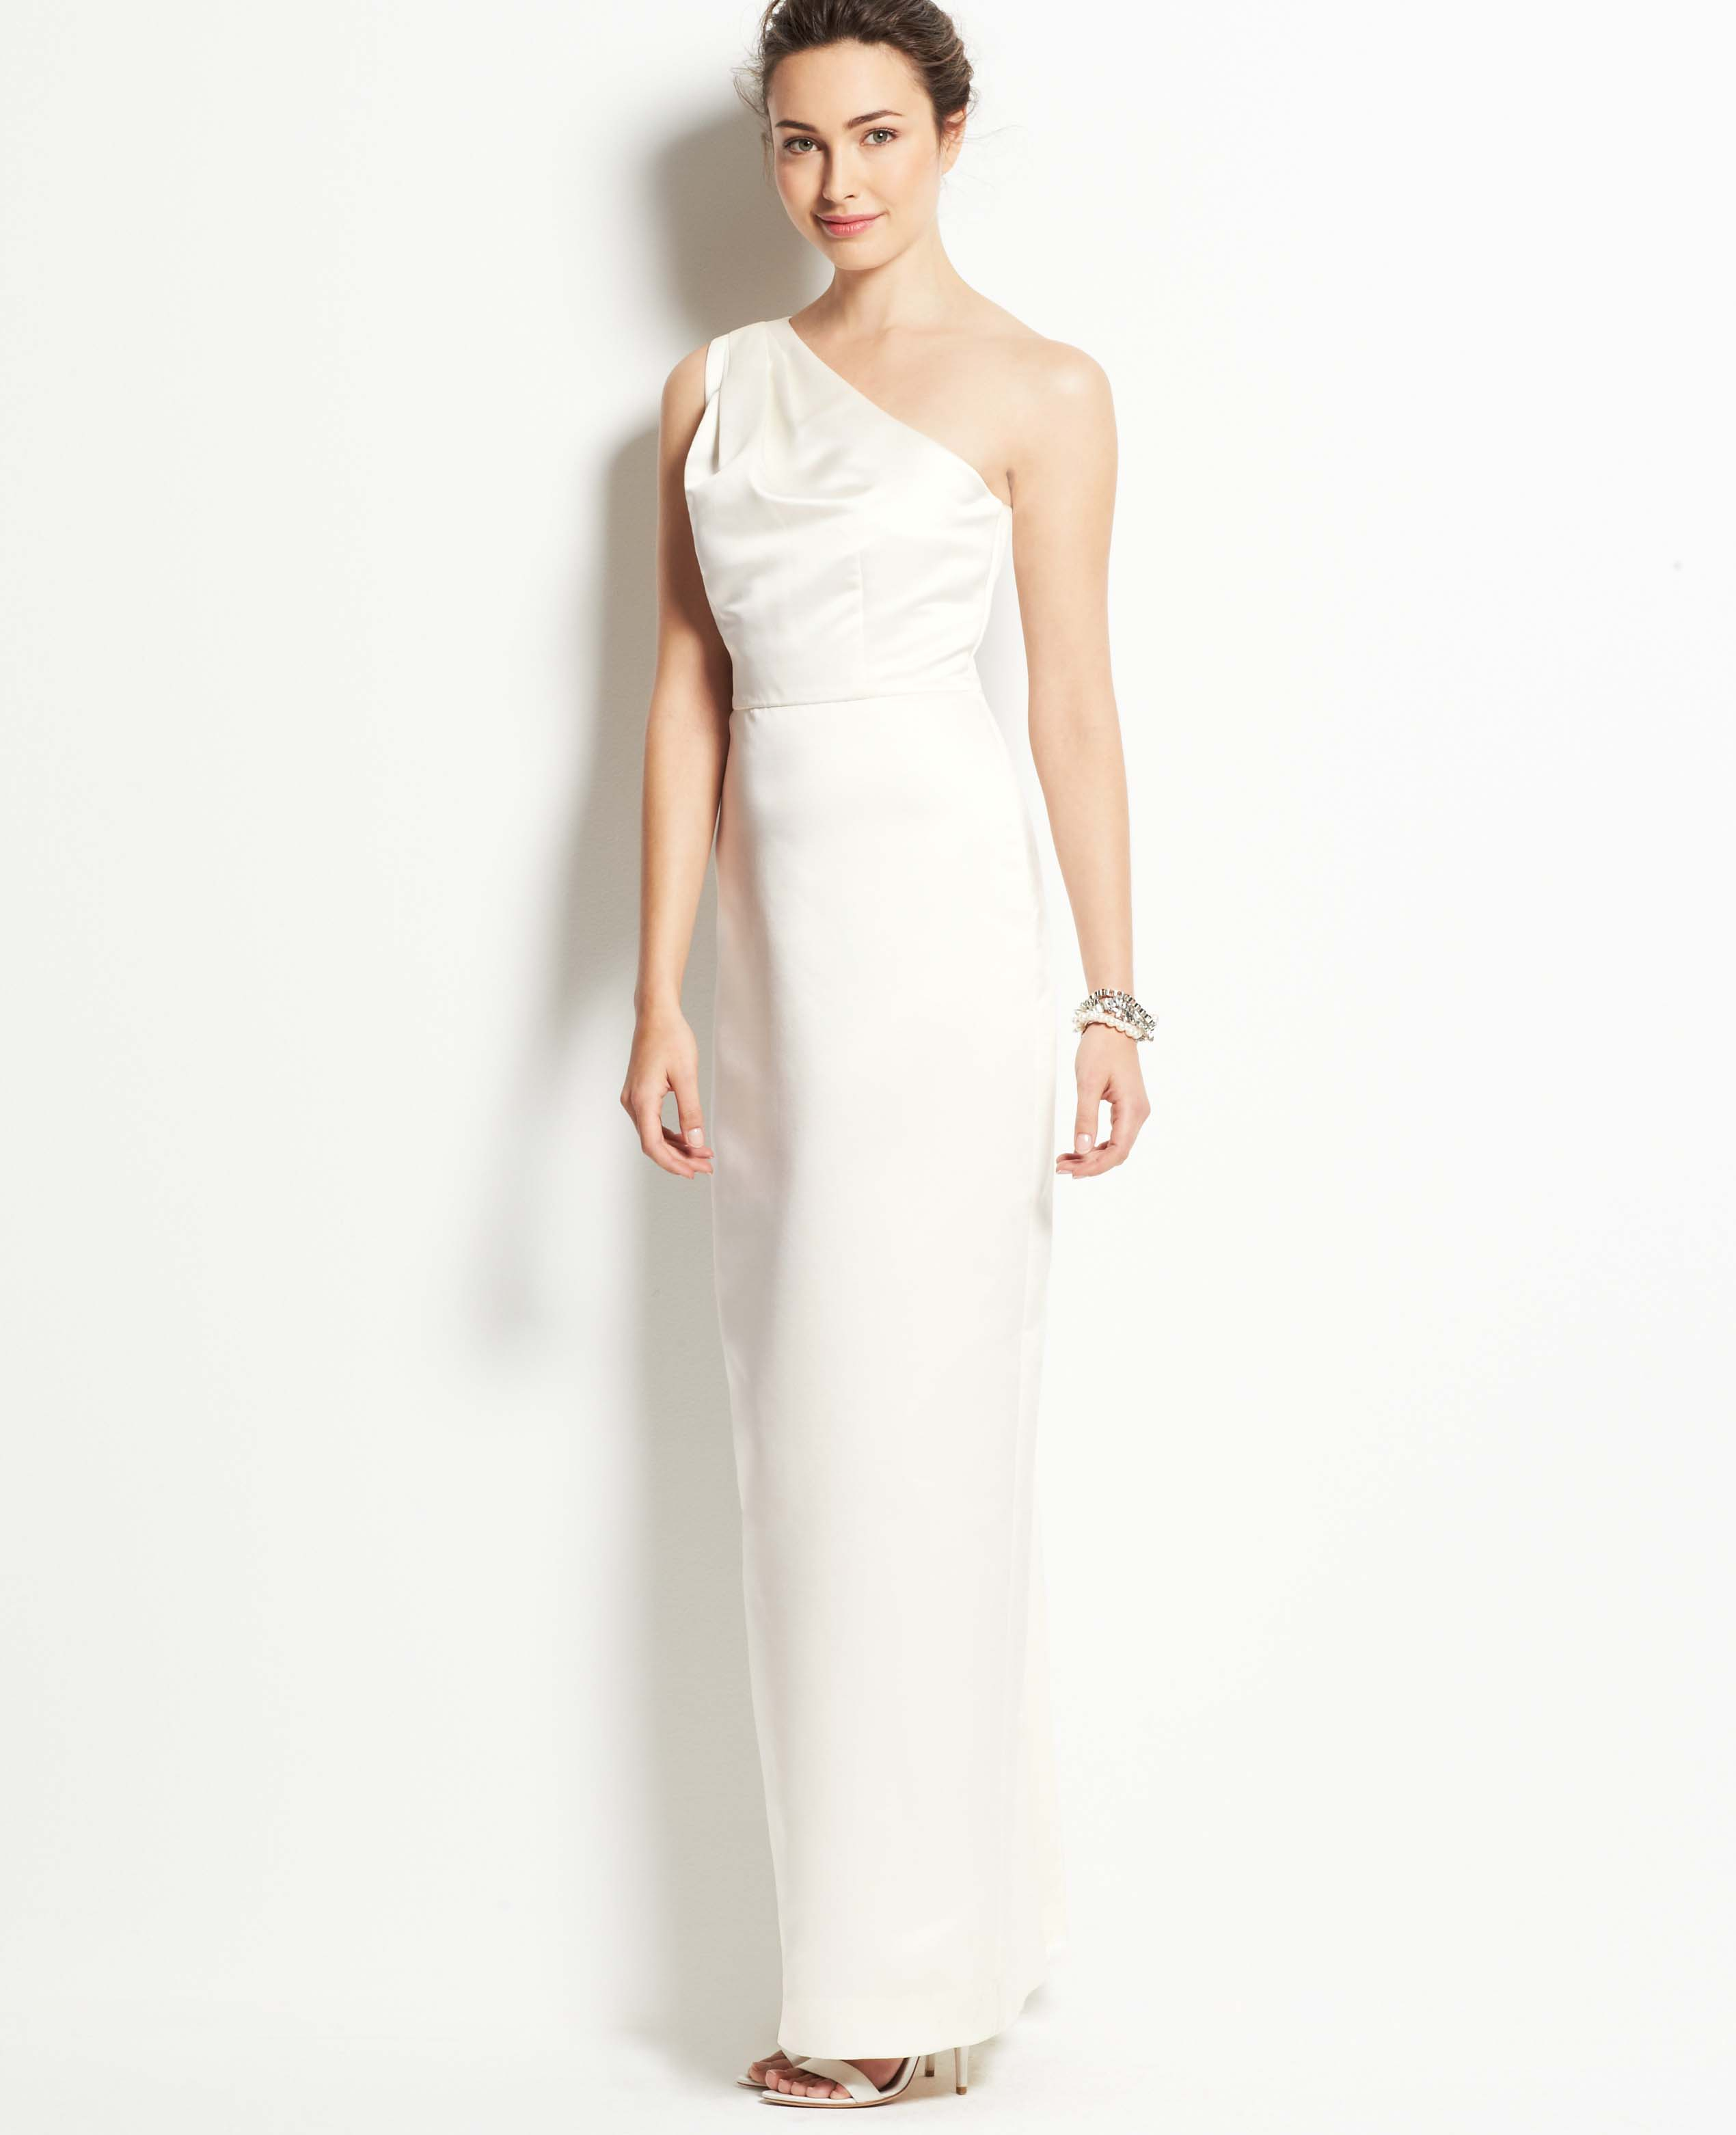 Ann Taylor Wedding Choice Image Wedding Dress